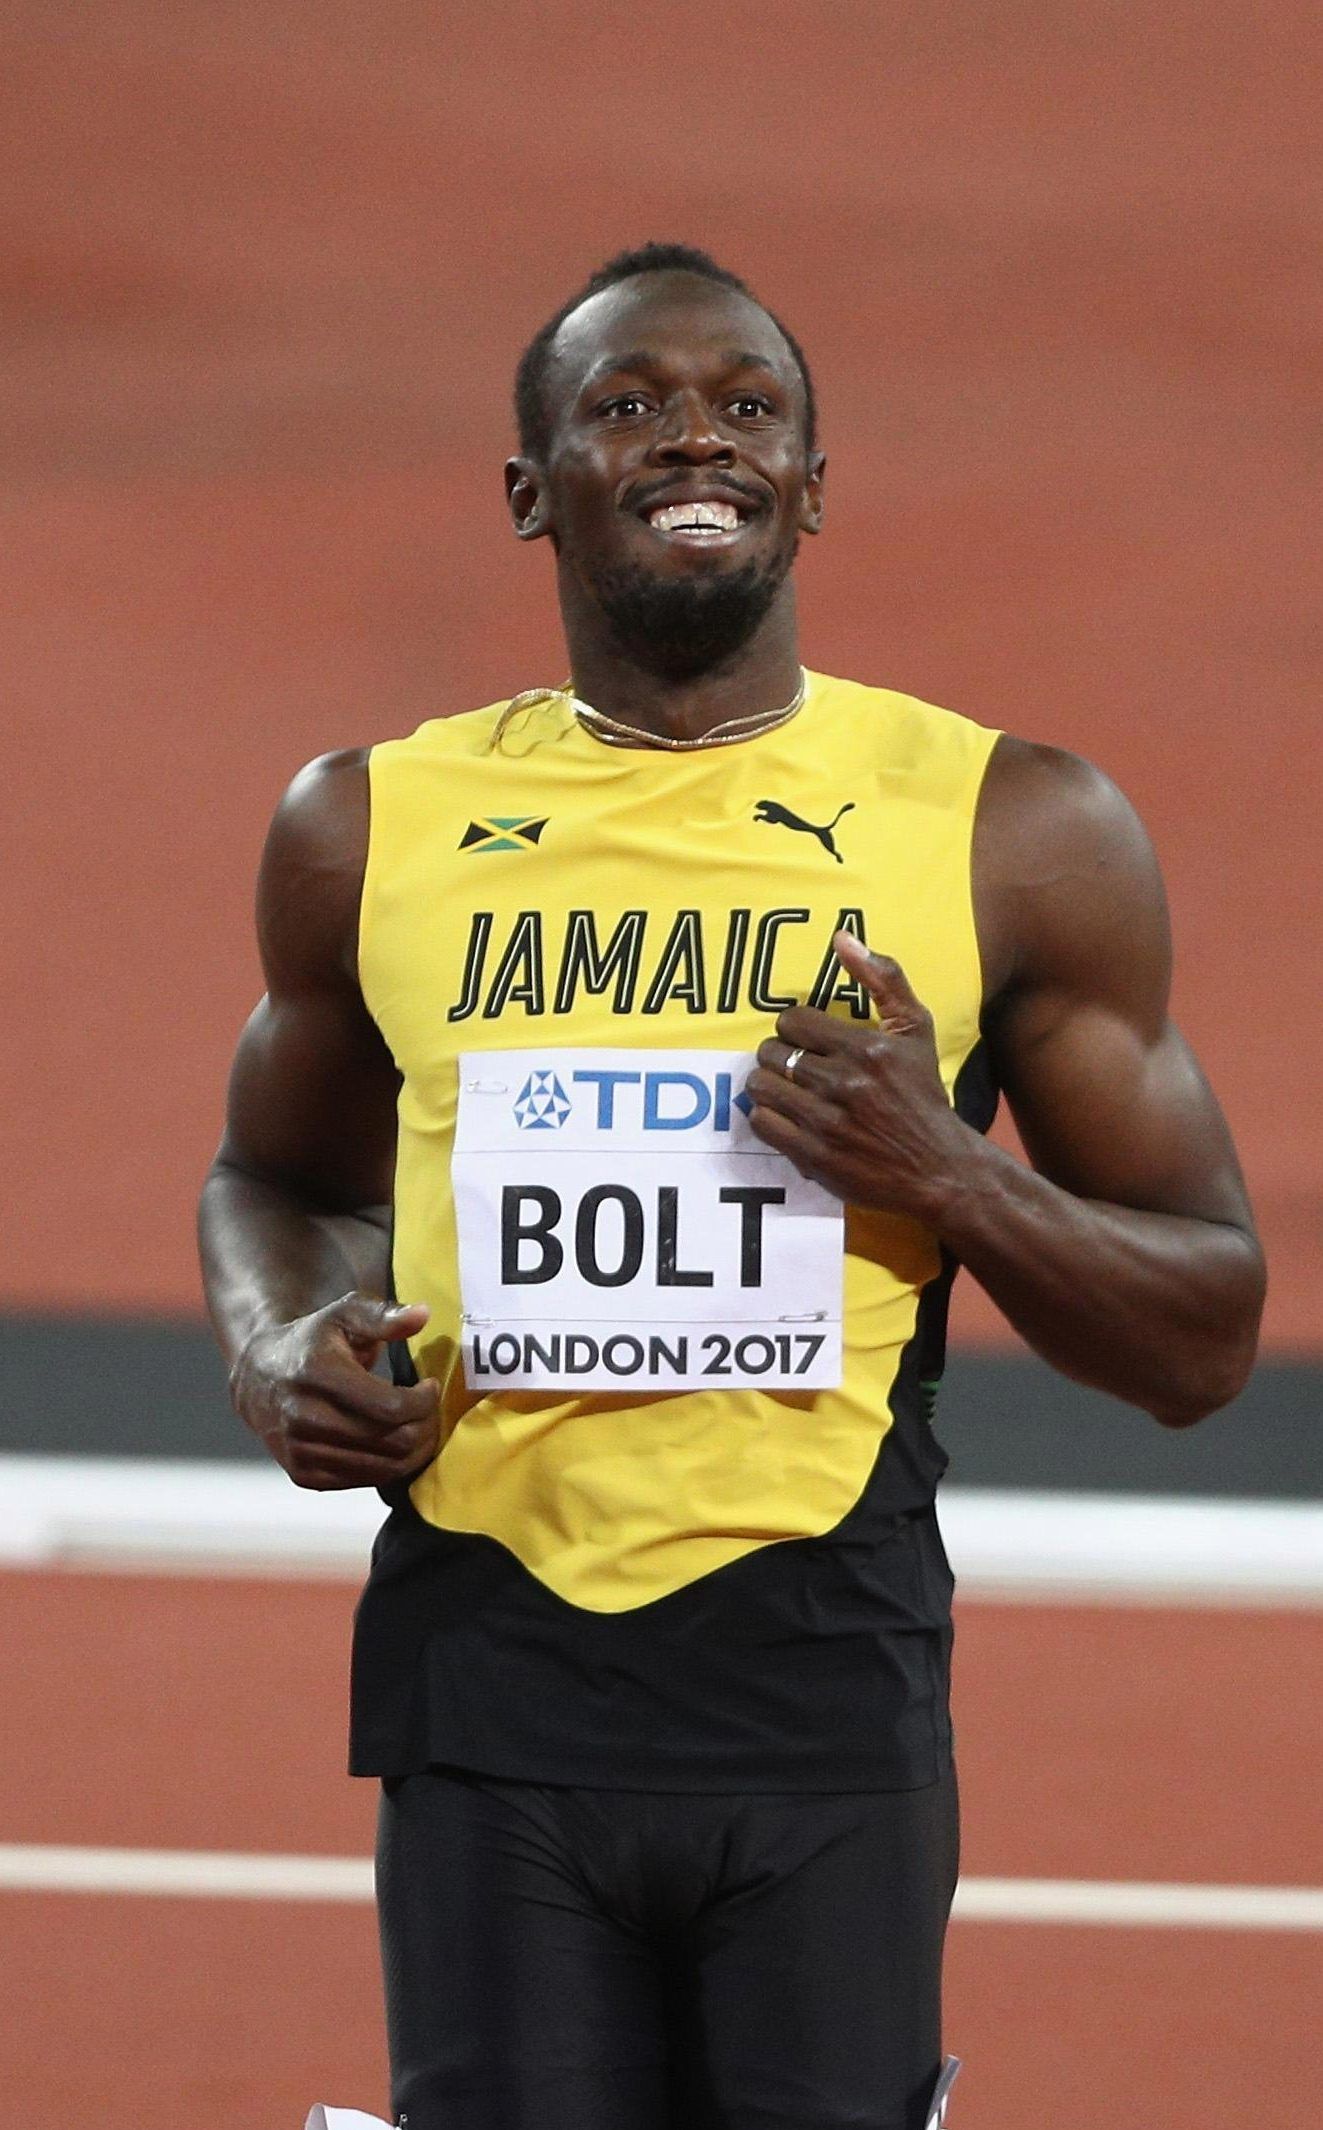 Usain Bolt says abstaining from sex the night before his races could be one of the reasons for his success